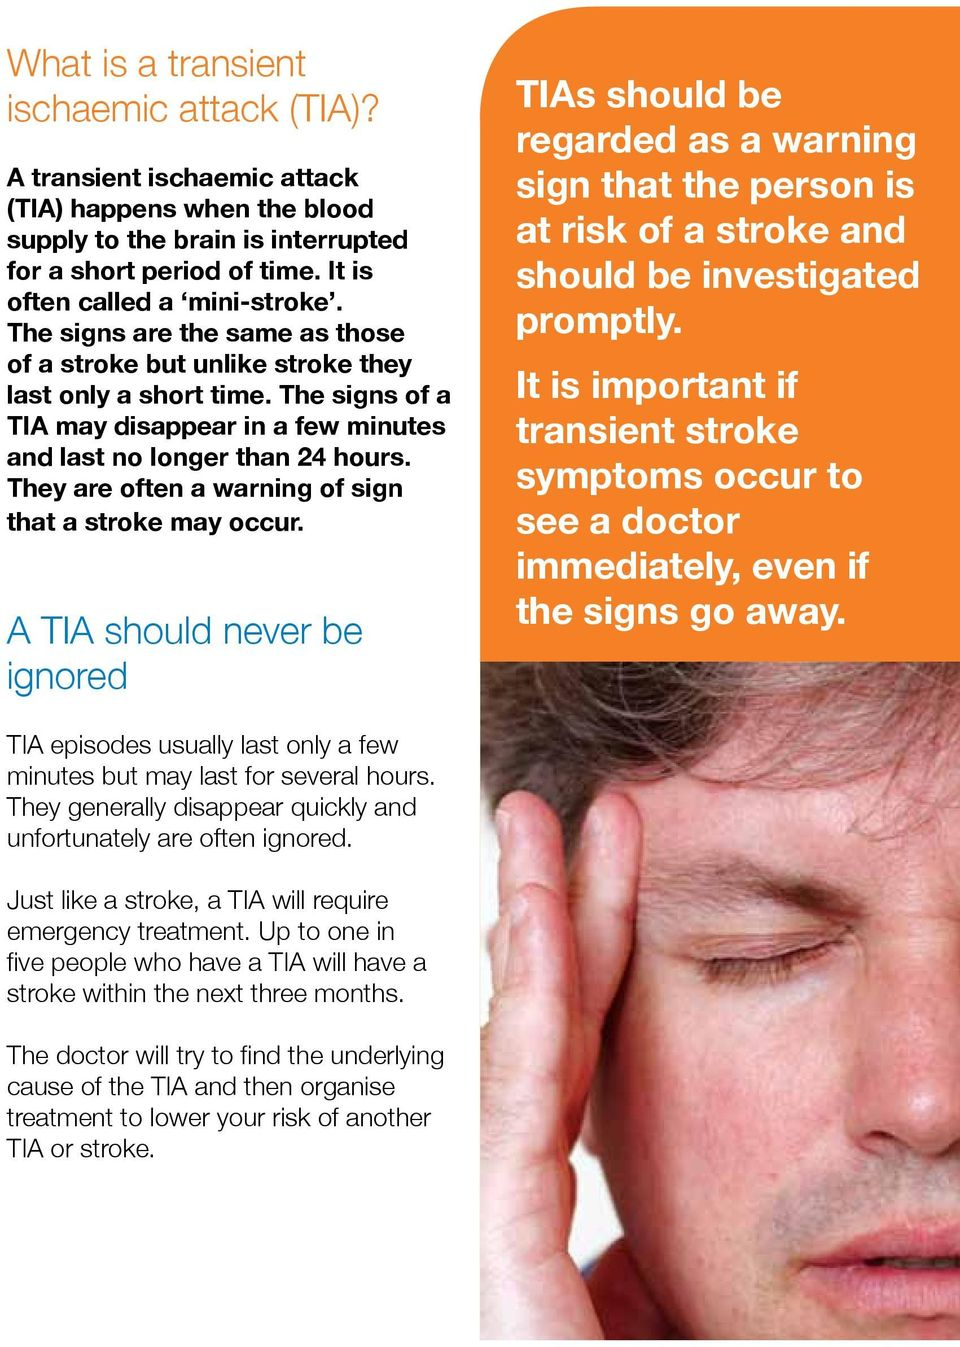 They are often a warning of sign that a stroke may occur.